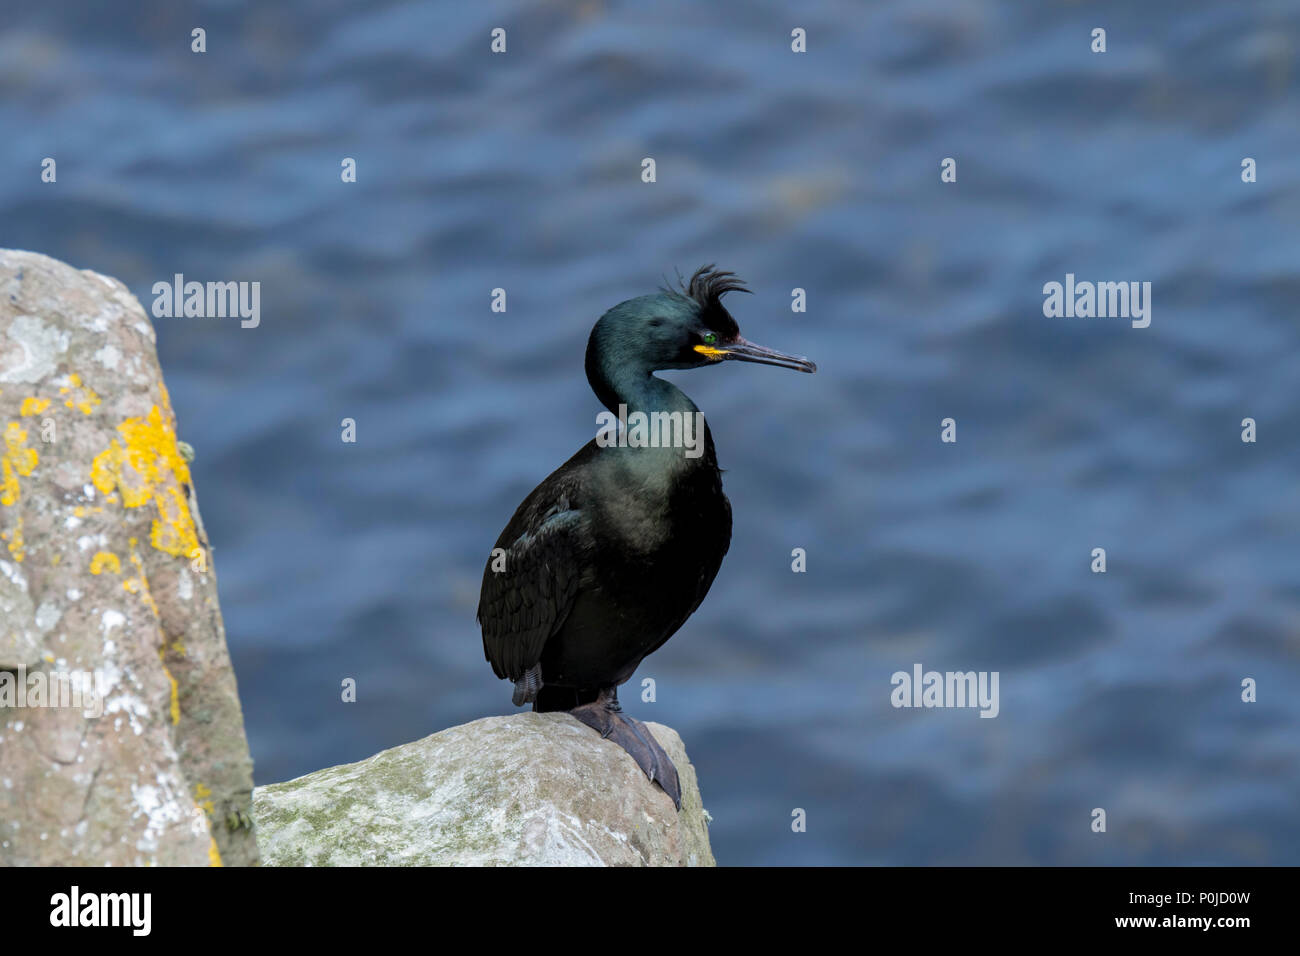 European shag / common shag (Phalacrocorax aristotelis) perched on rock in sea cliff in spring, Shetland Islands, Scotland, UK Stock Photo